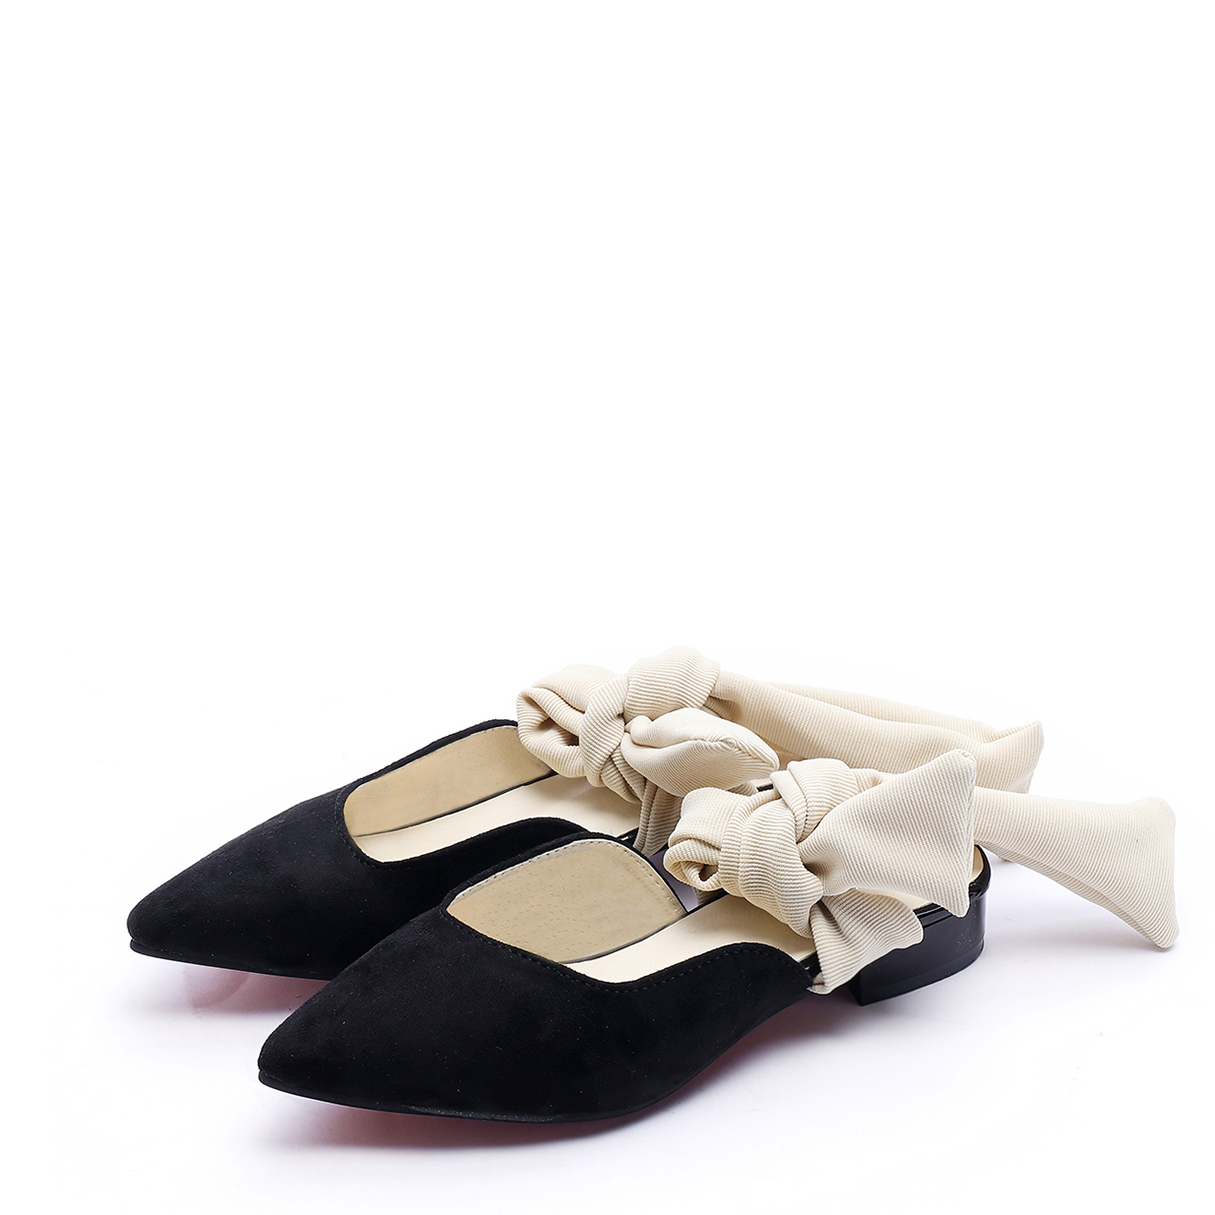 Black Suede Pinted Toe Strap Design Slippers pink suede pinted toe strap design slippers